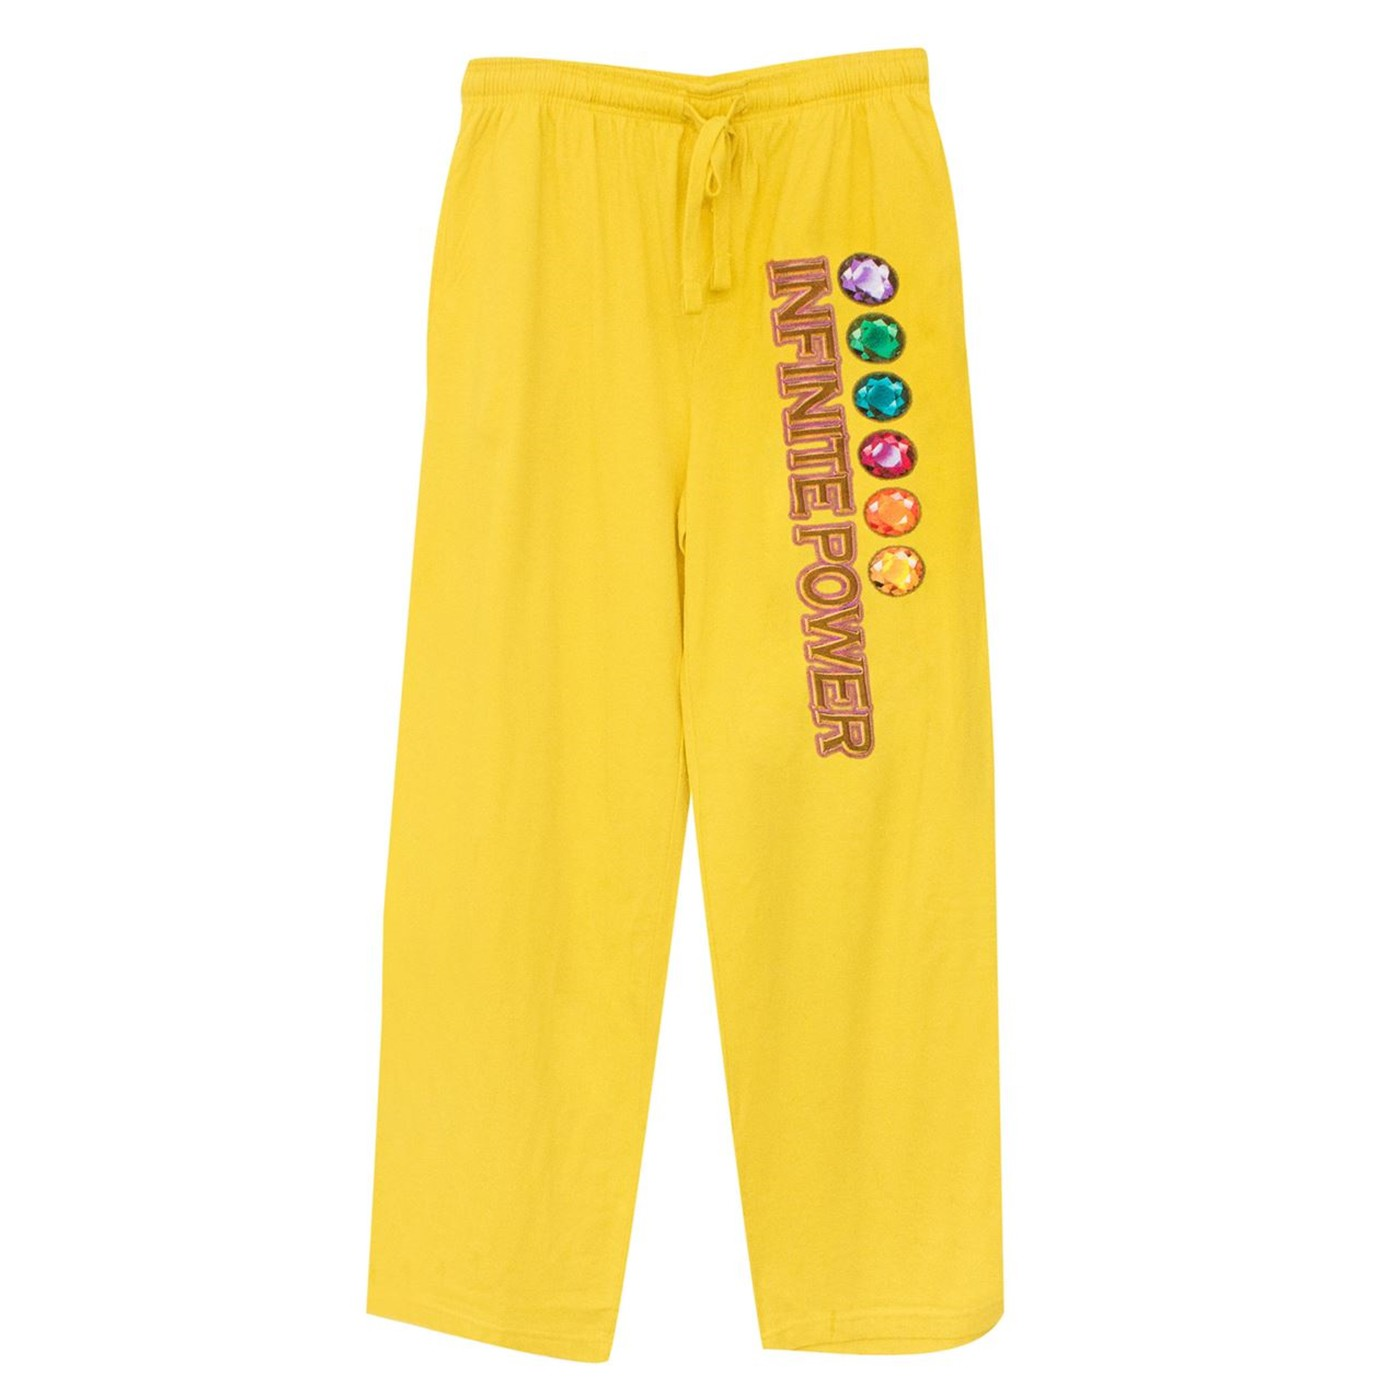 Thanos Infinite Power Unisex Pajama Pants